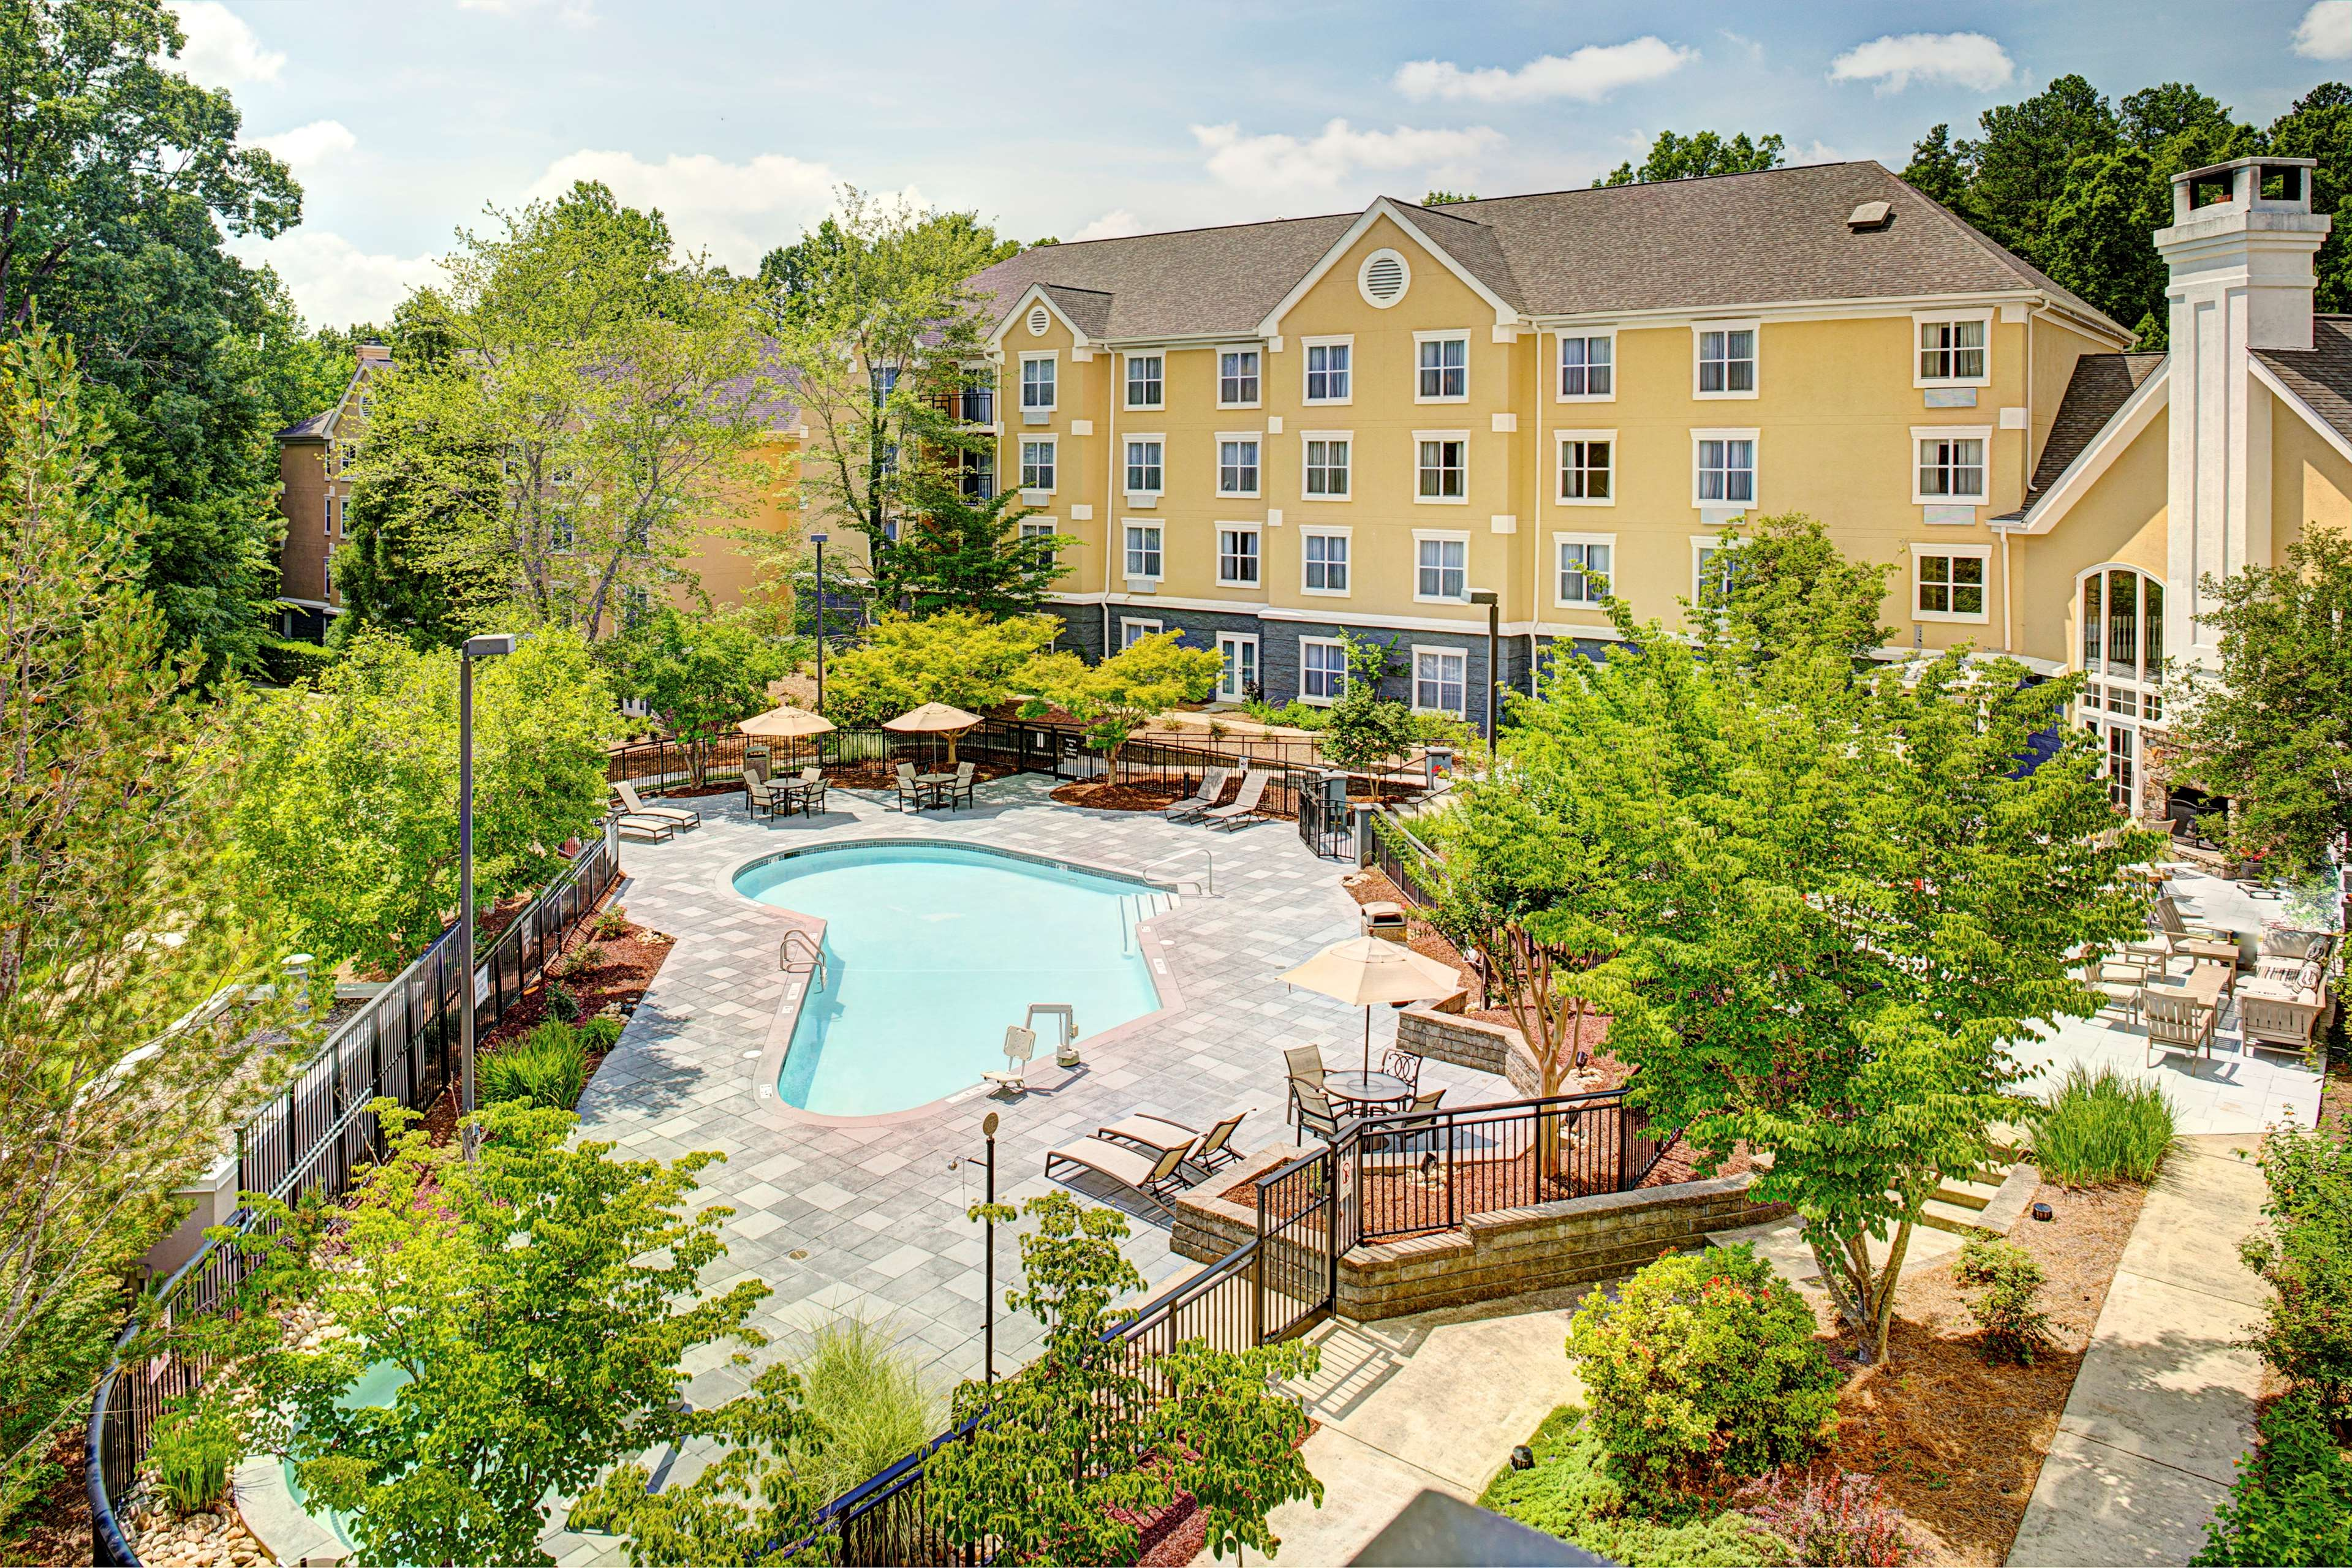 Homewood Suites by Hilton Raleigh/Cary image 4